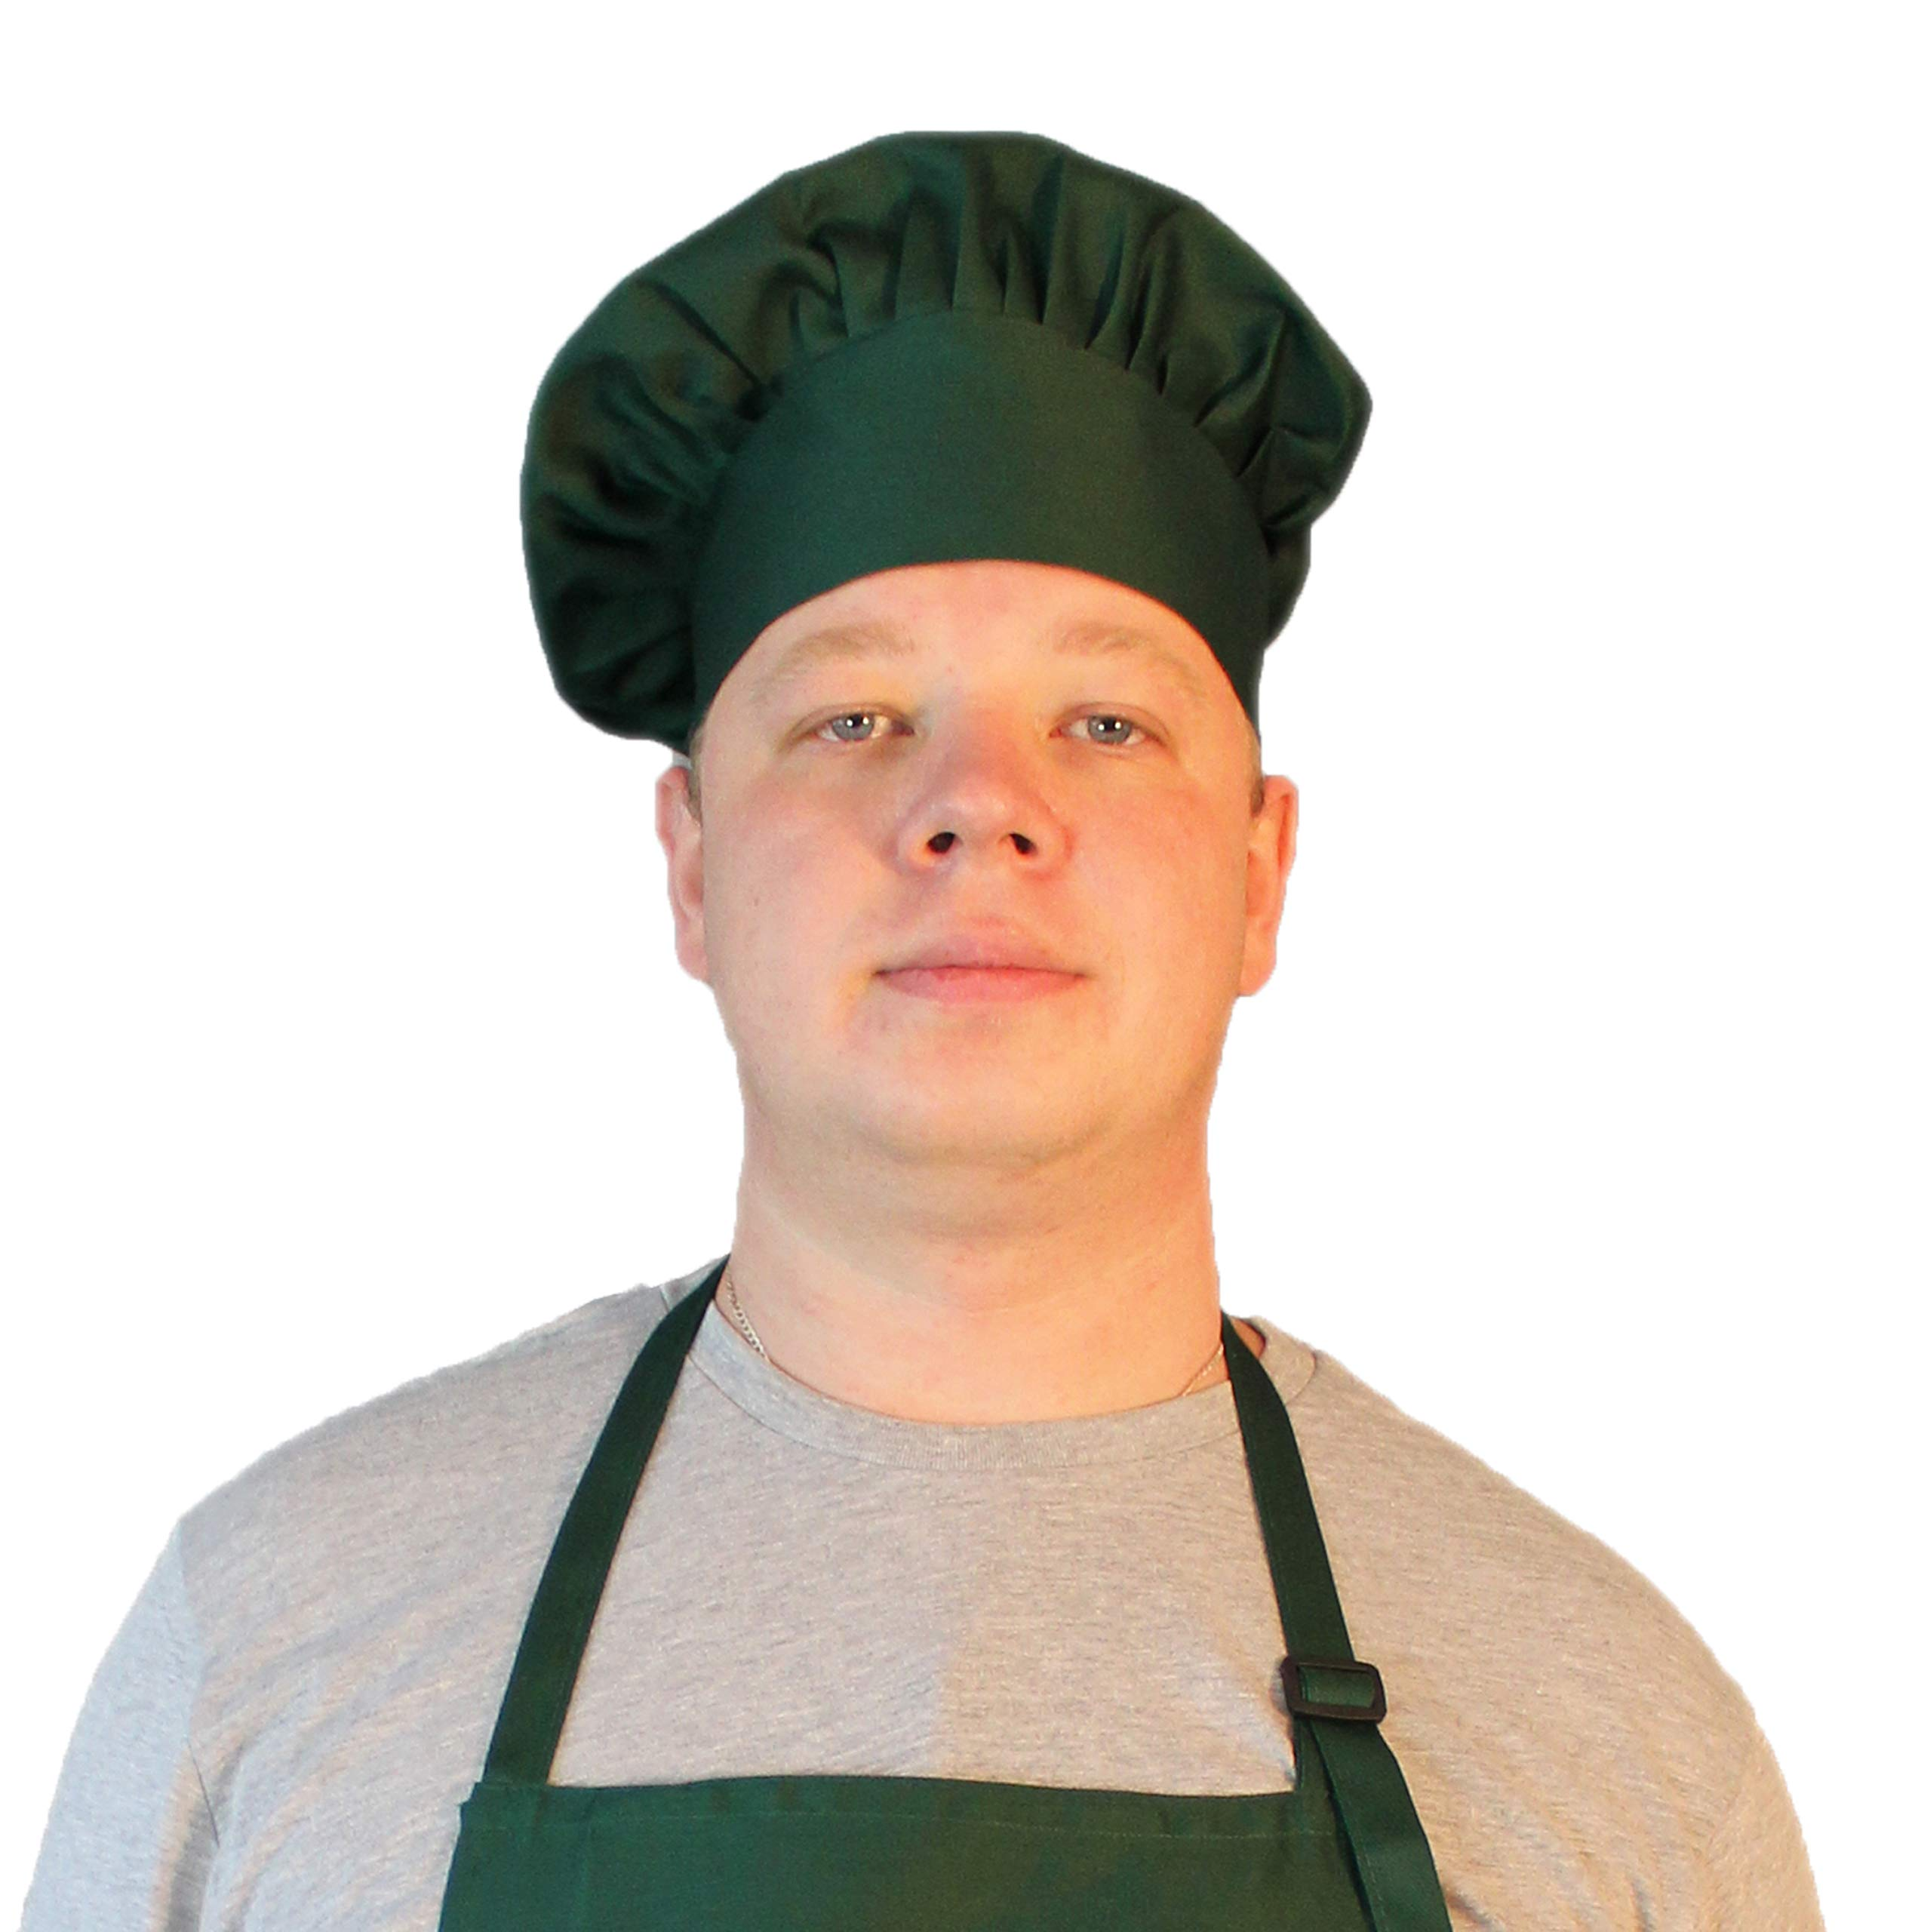 Personalized Custom Chef Hat Adjustable Makes a Great Gift! 5 Colors - White/Black/Red/Navy Blue/Dark Green